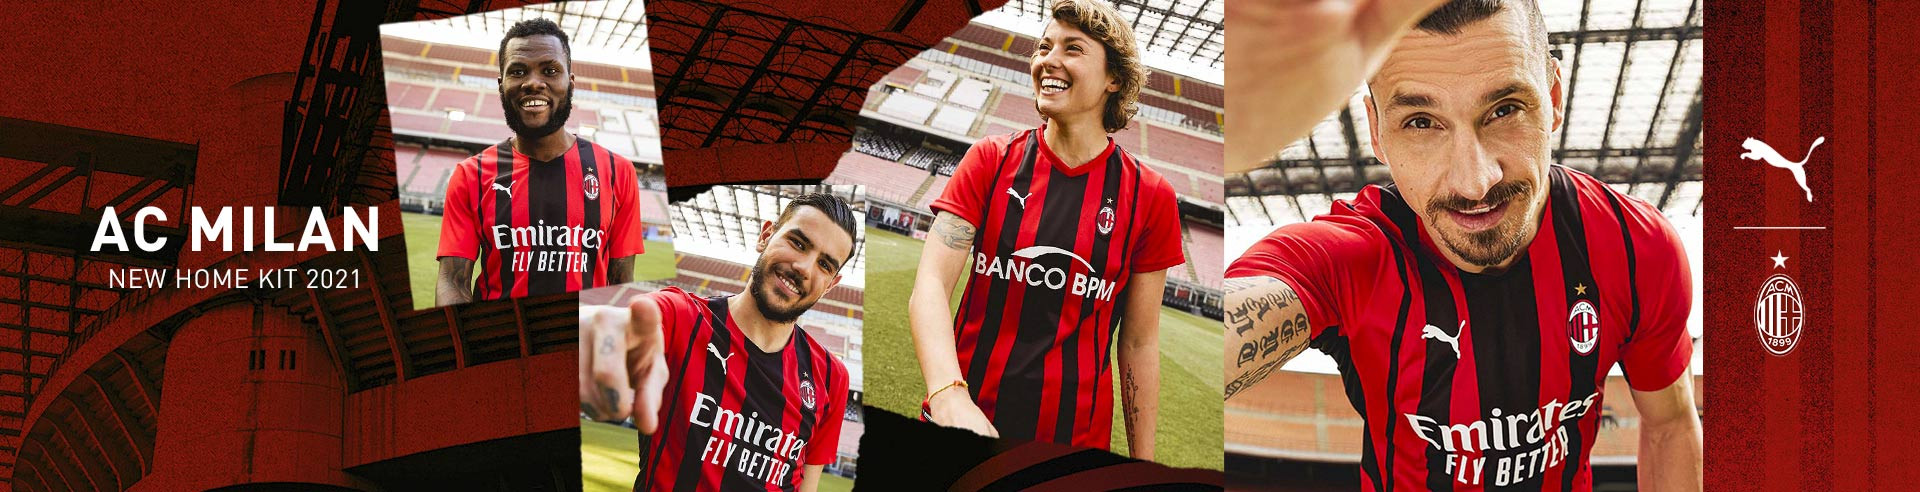 PUMA AC MILAN NEW HOME KIT 2021